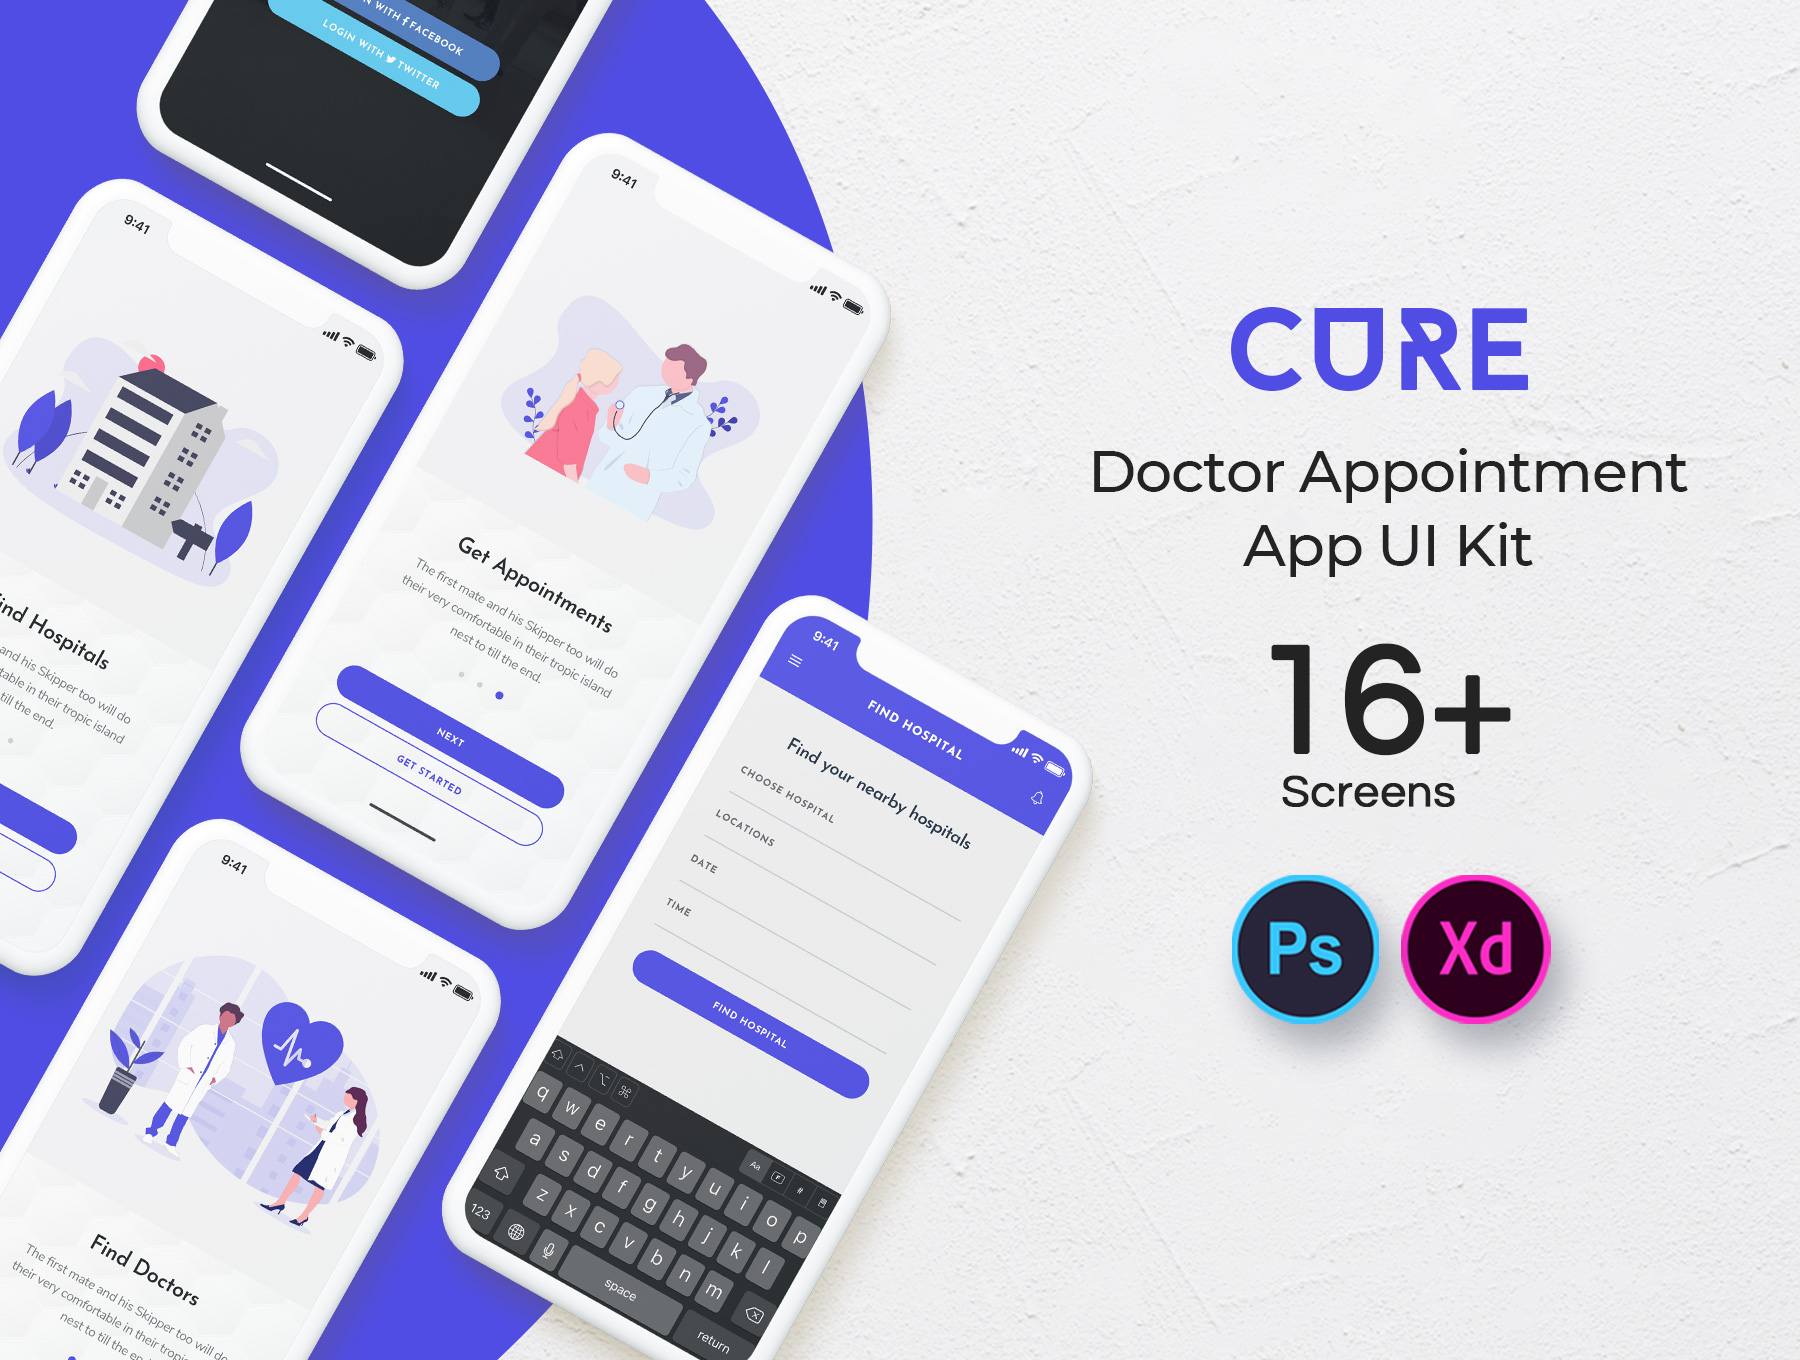 Cure: Doctor Appointment Mobile App UI Kit